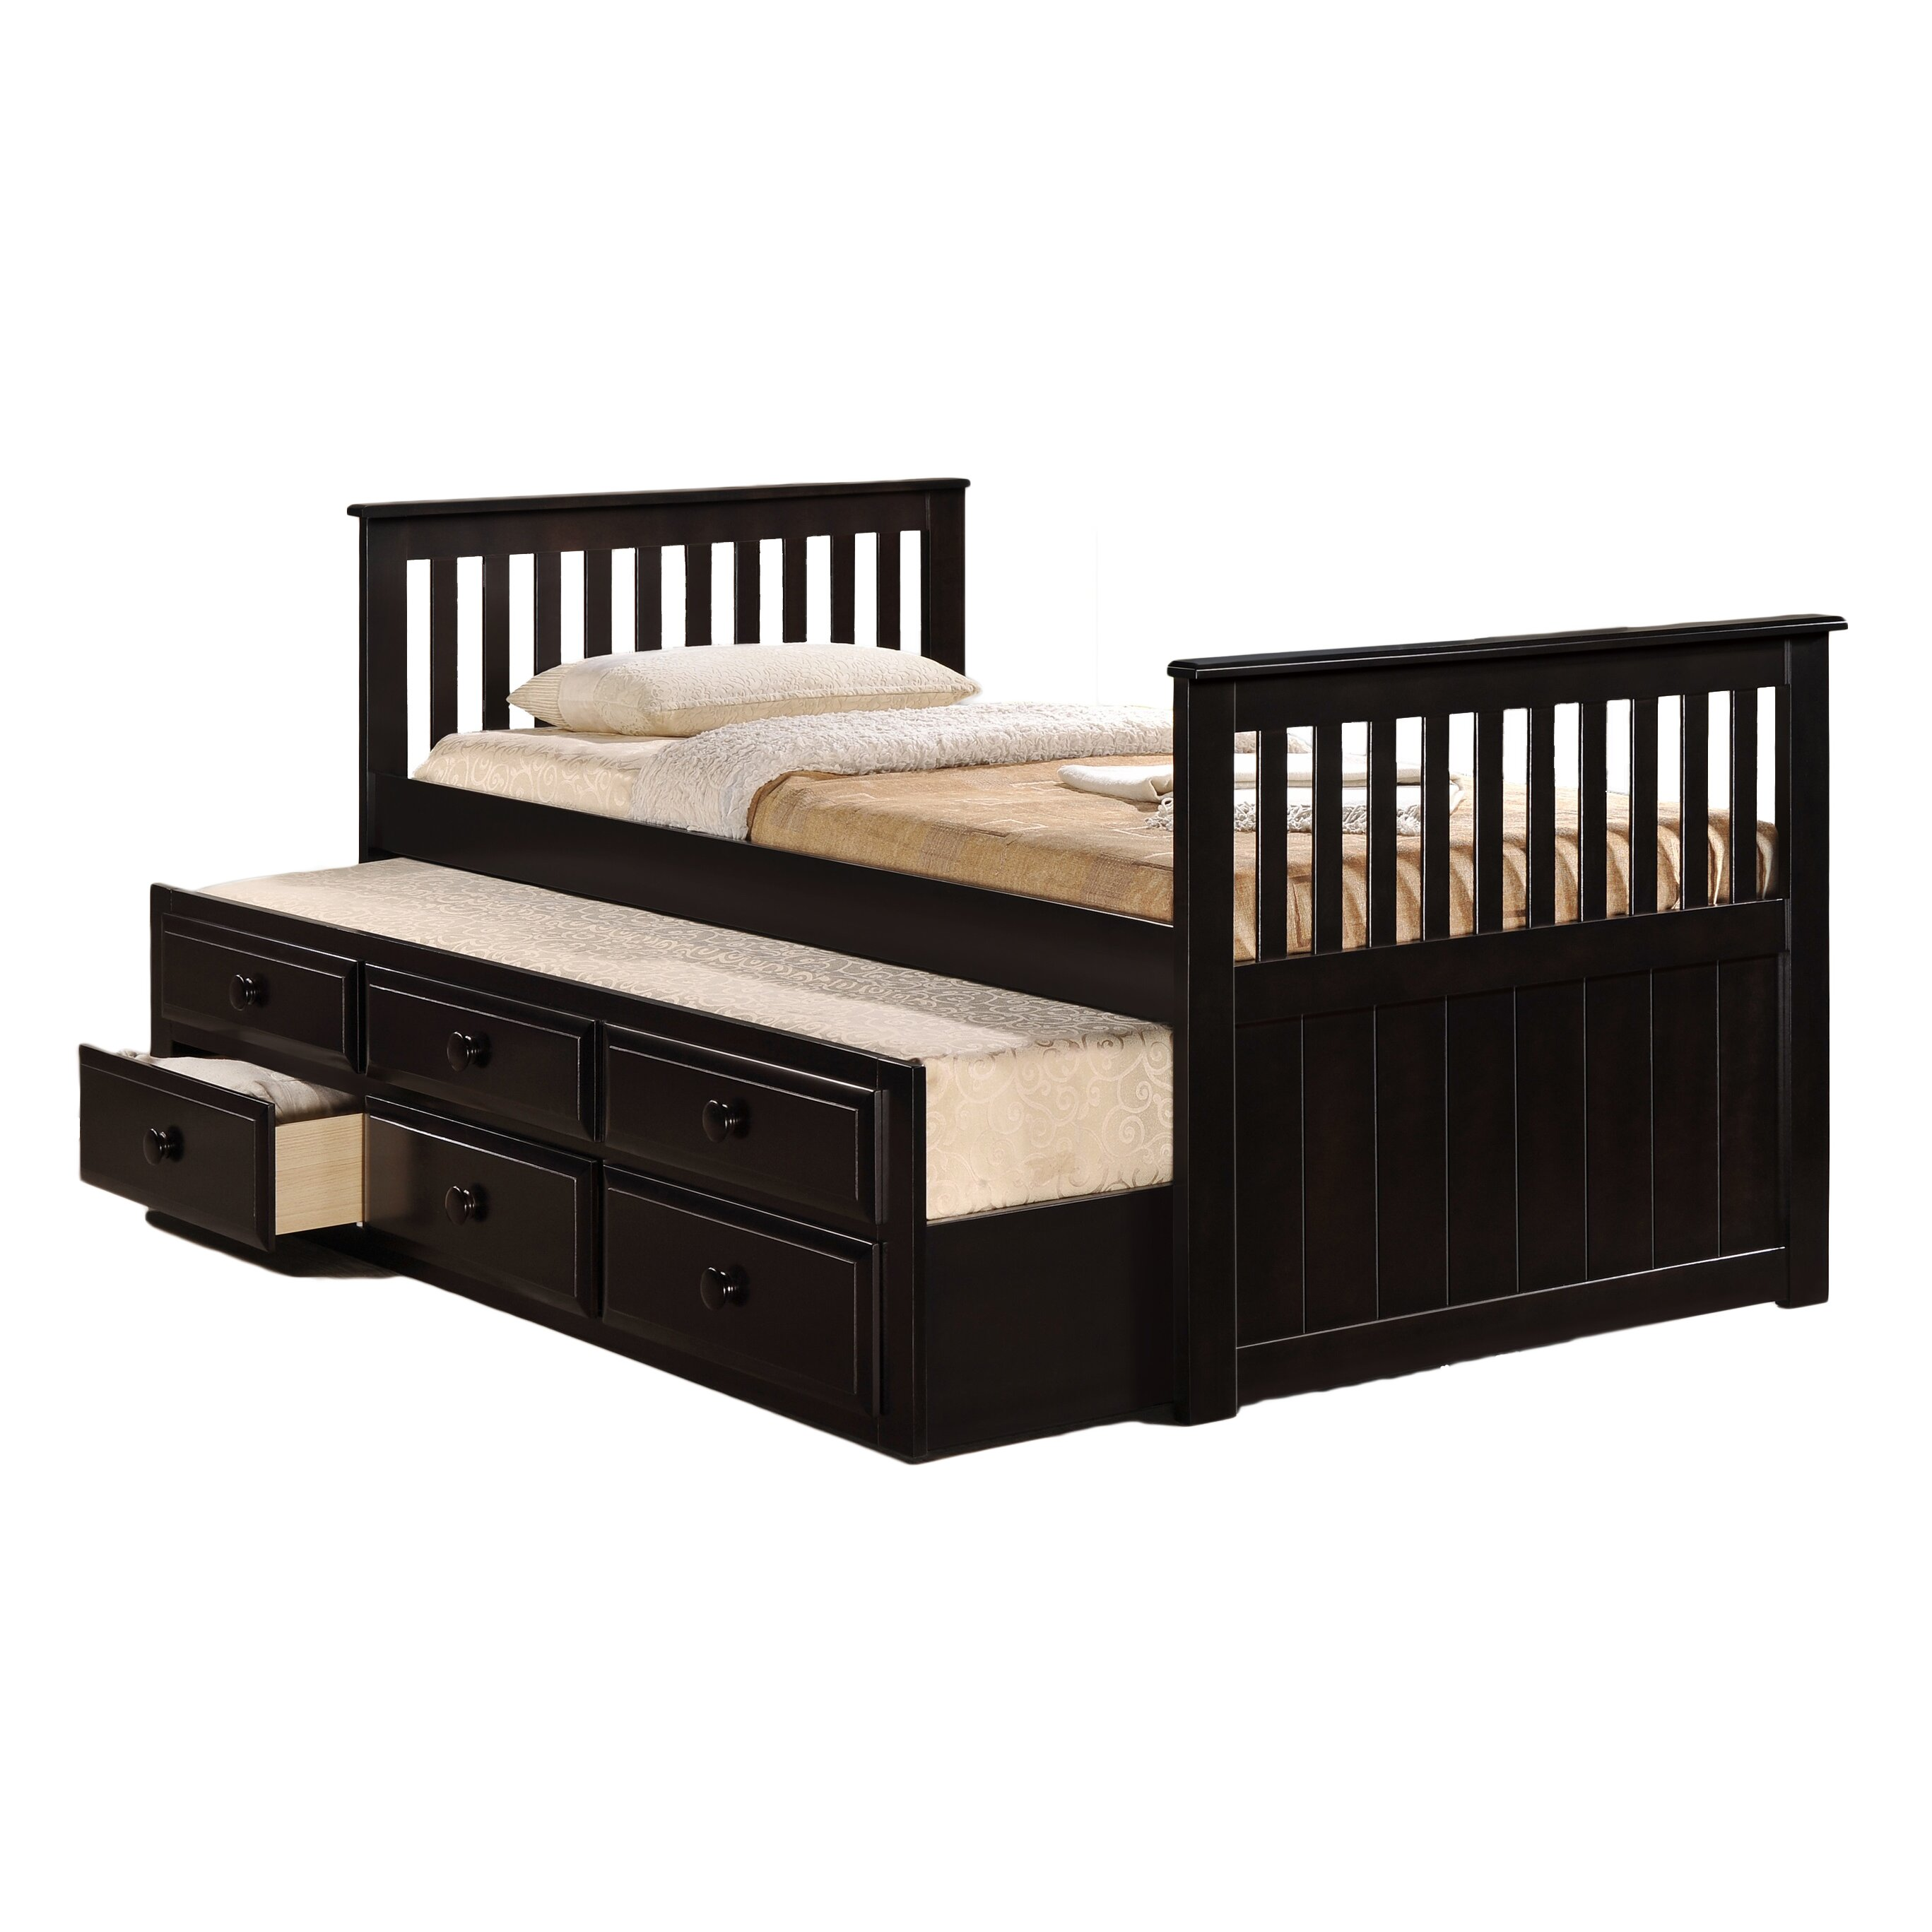 milton green star riley twin captain bed with storage reviews wayfair. Black Bedroom Furniture Sets. Home Design Ideas